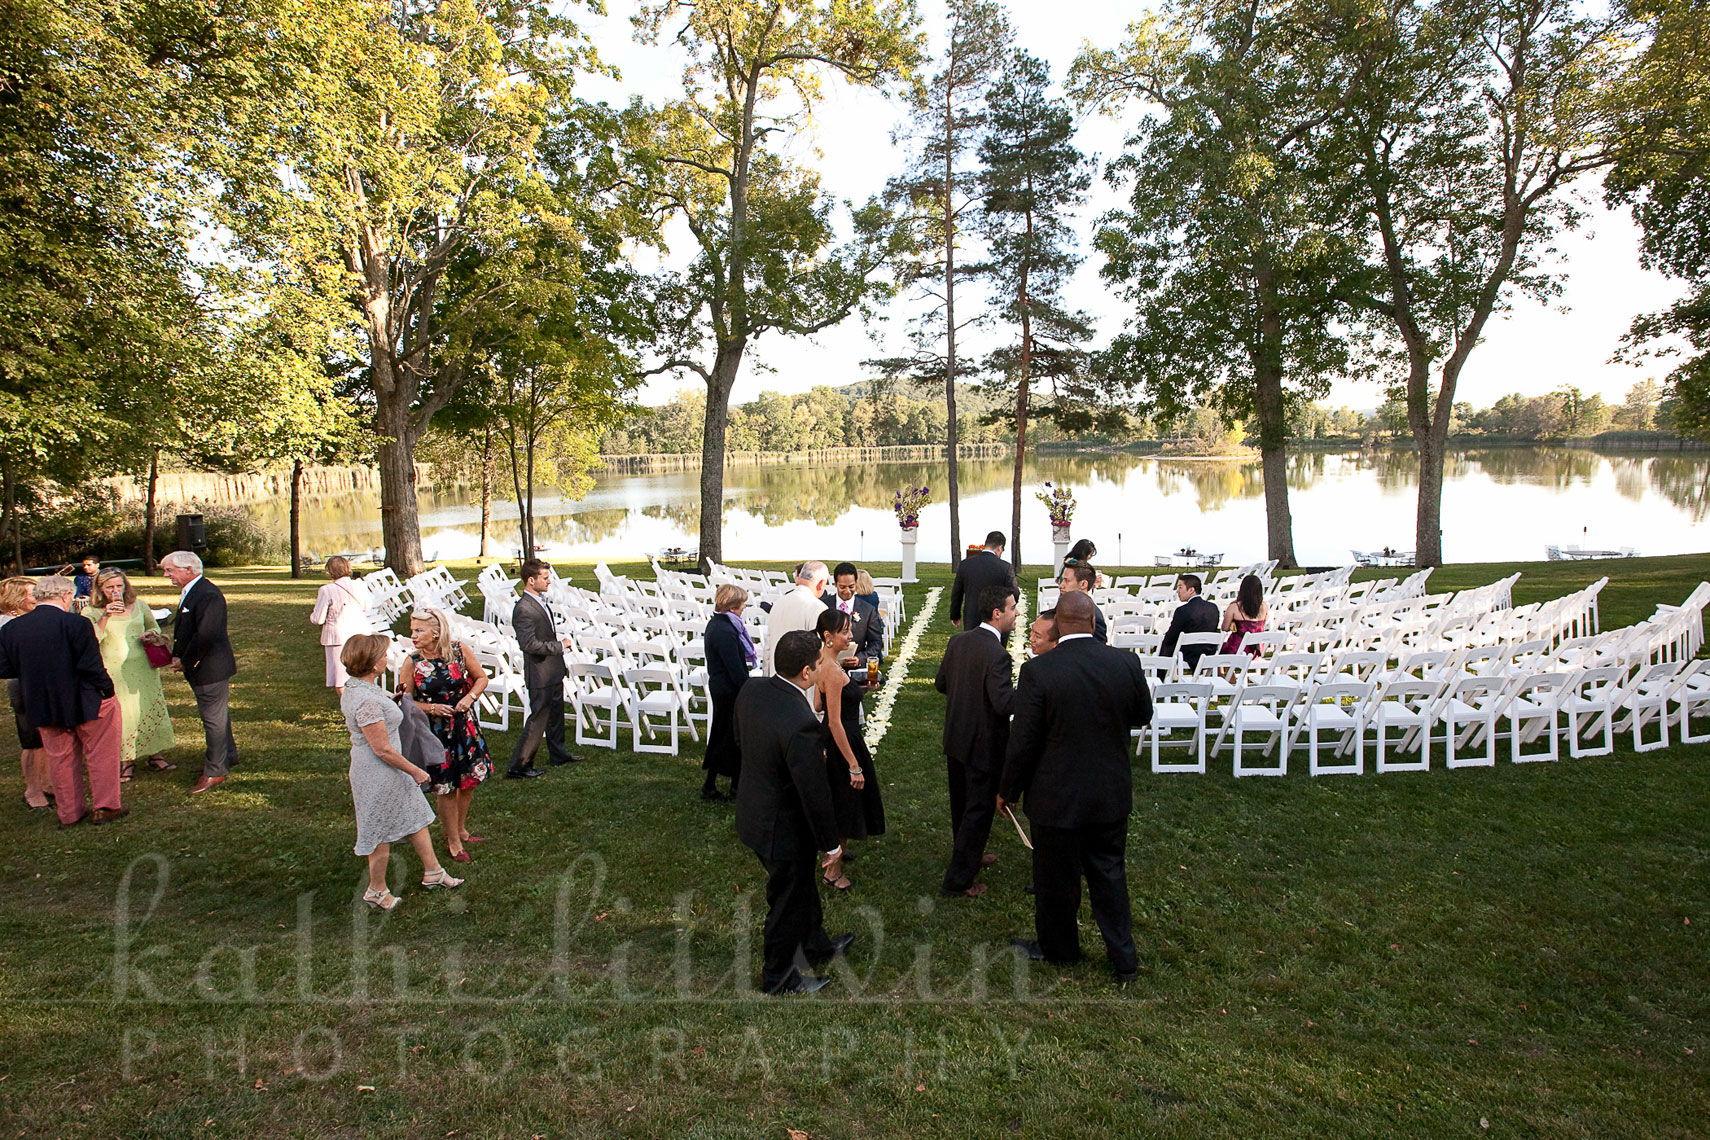 Kathi_Littwin_Photography_Mashomack_wedding_3032